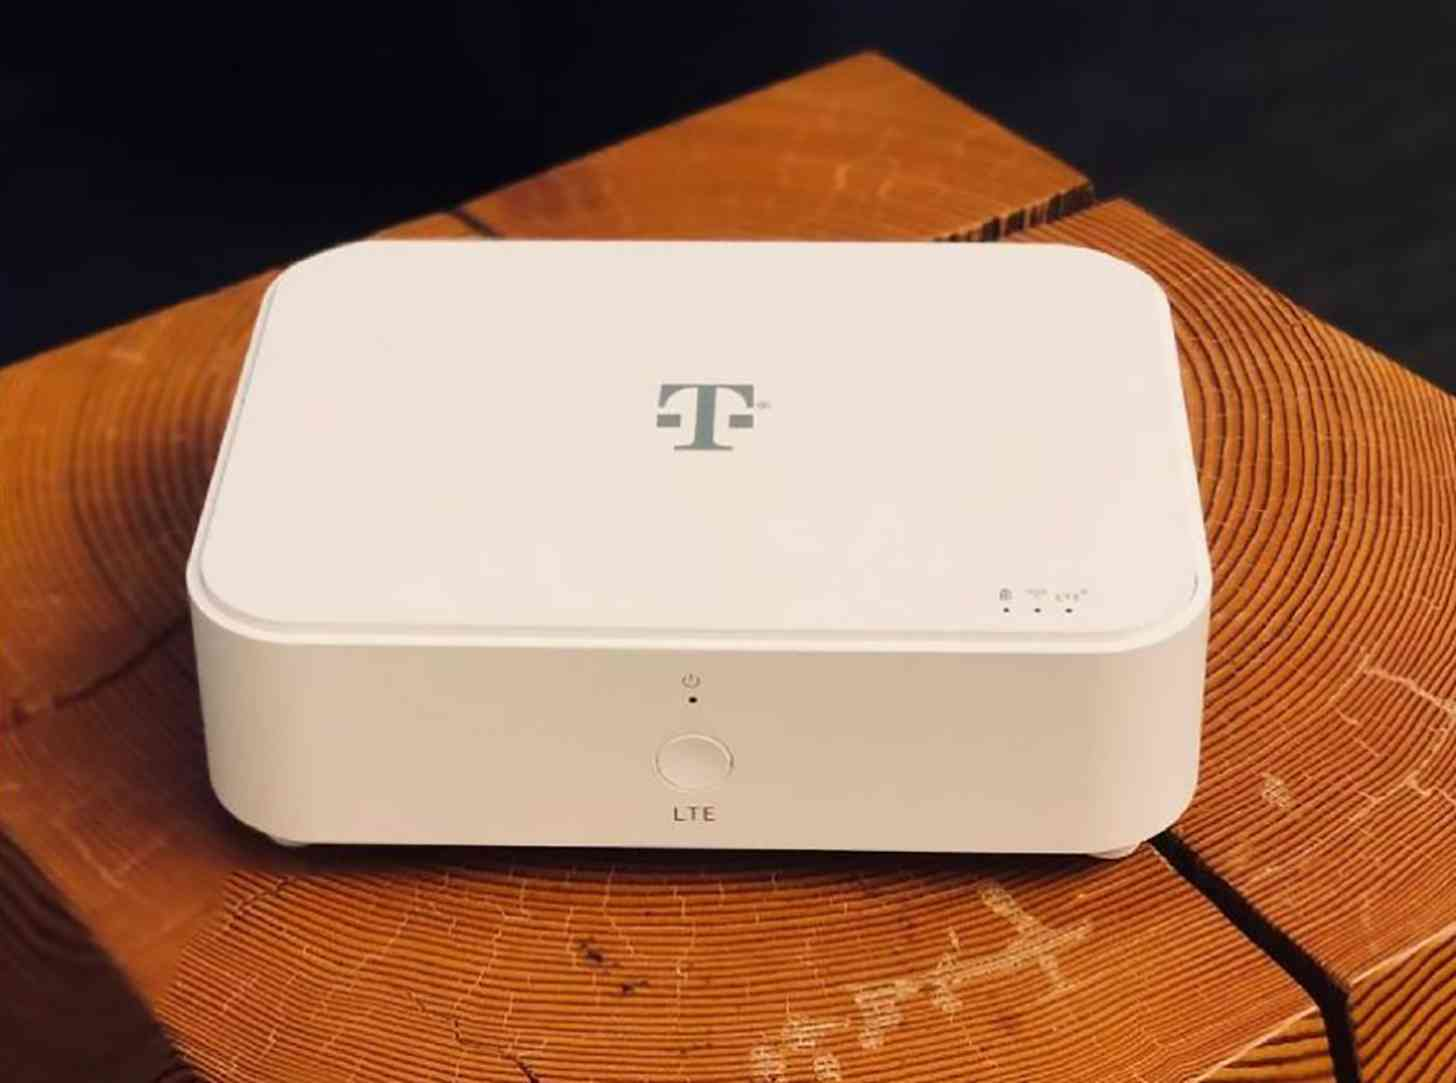 T-Mobile 4G LTE home internet router